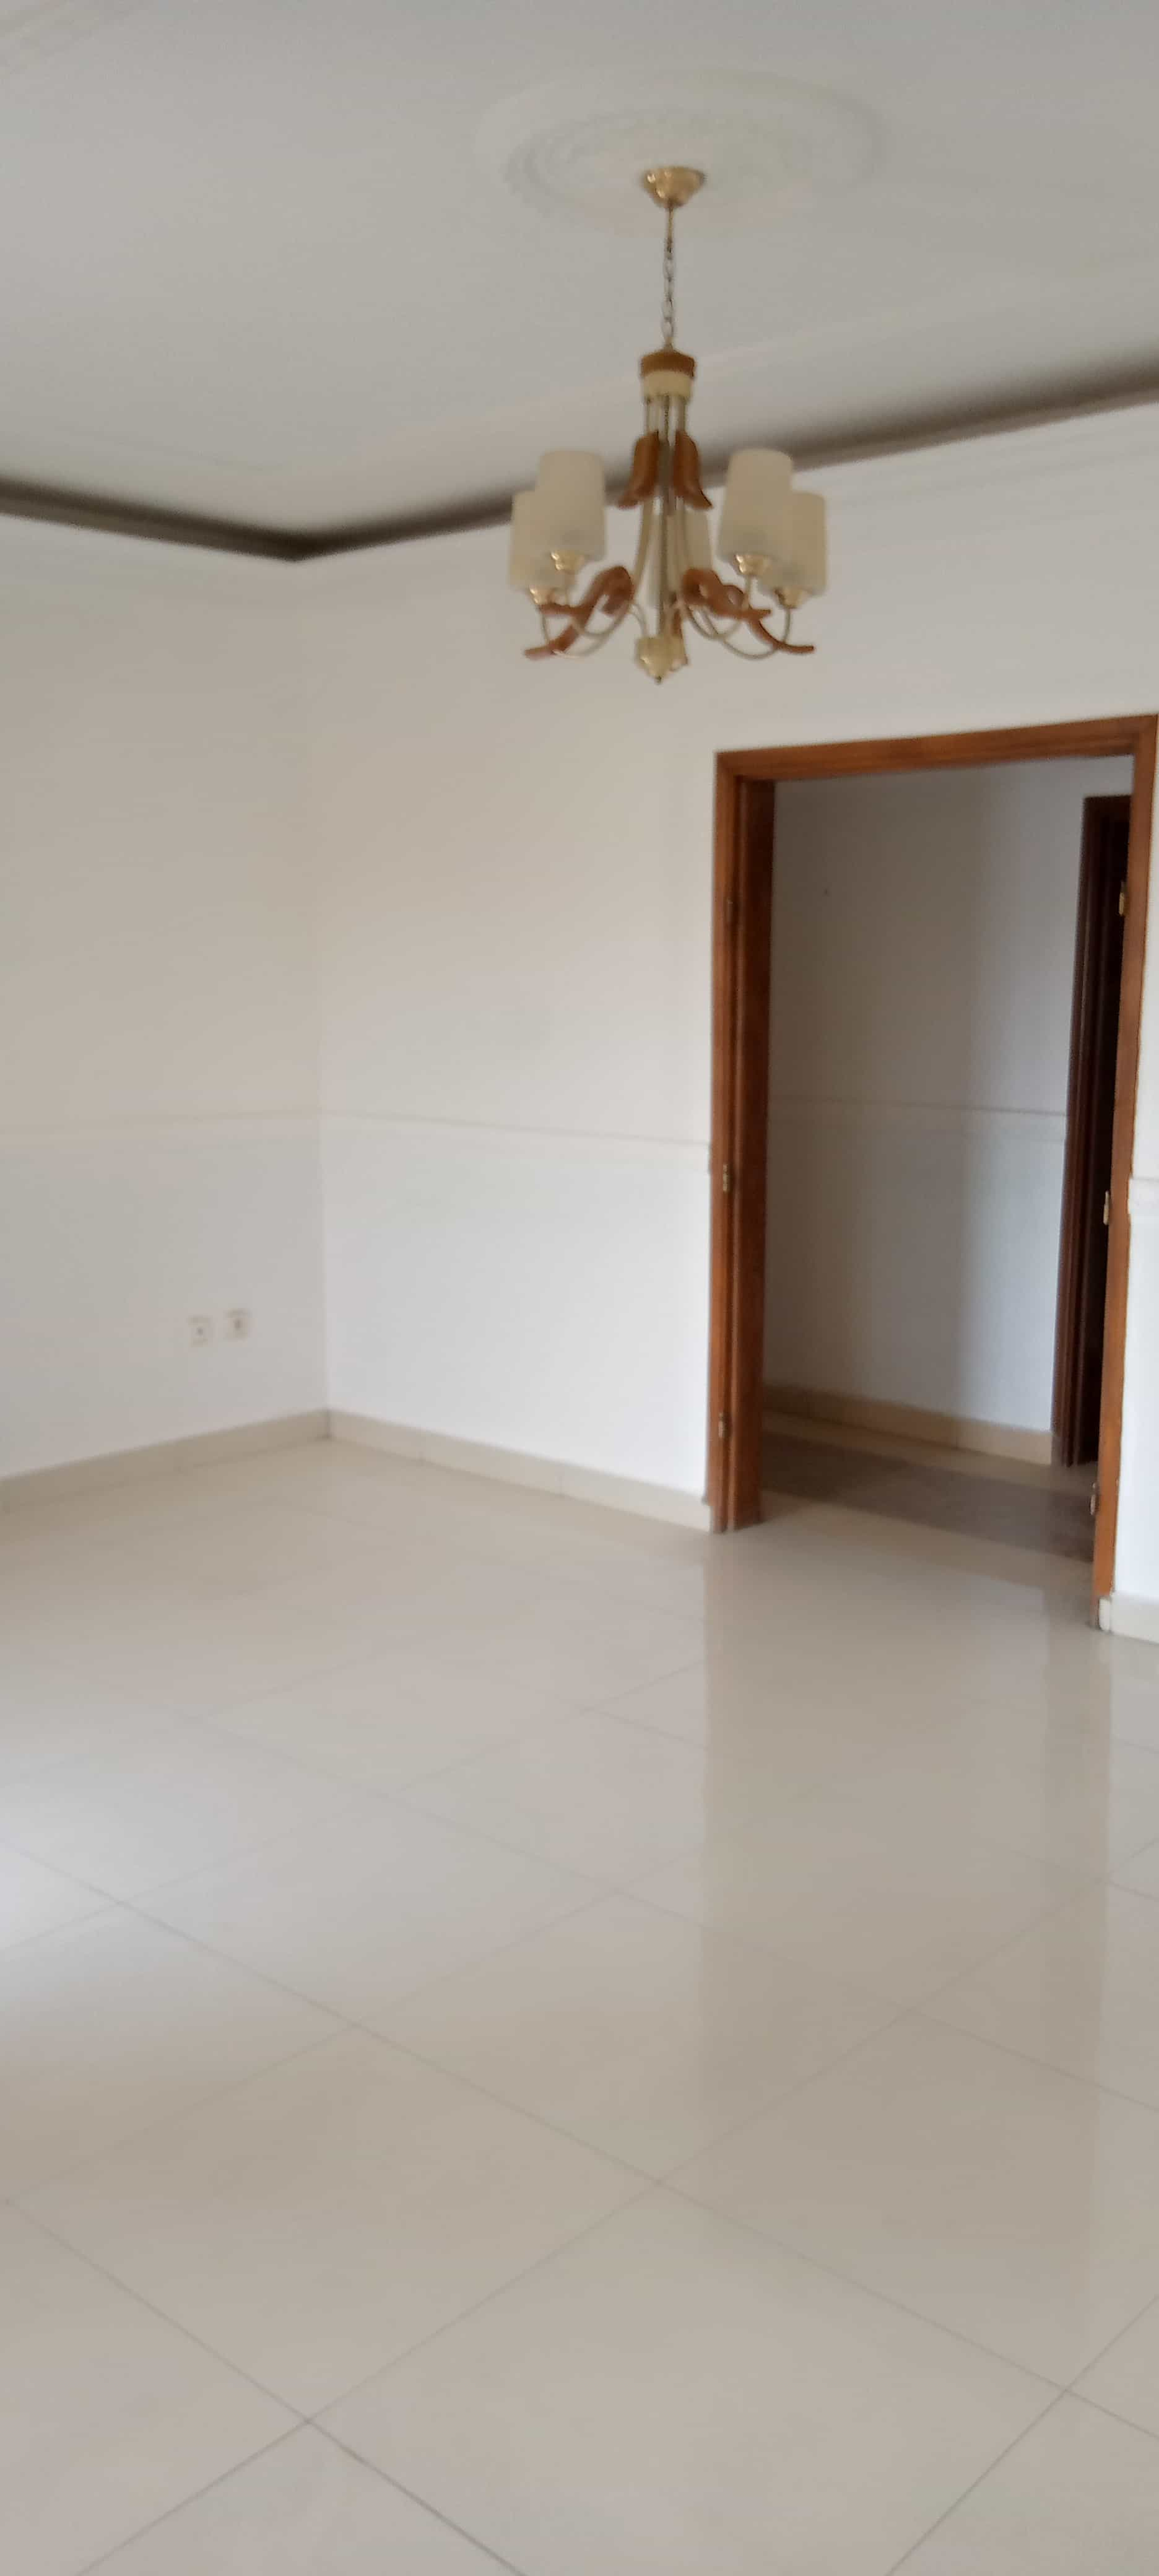 Apartment to rent - Yaoundé, Bastos, Dragage - 1 living room(s), 2 bedroom(s), 2 bathroom(s) - 320 000 FCFA / month